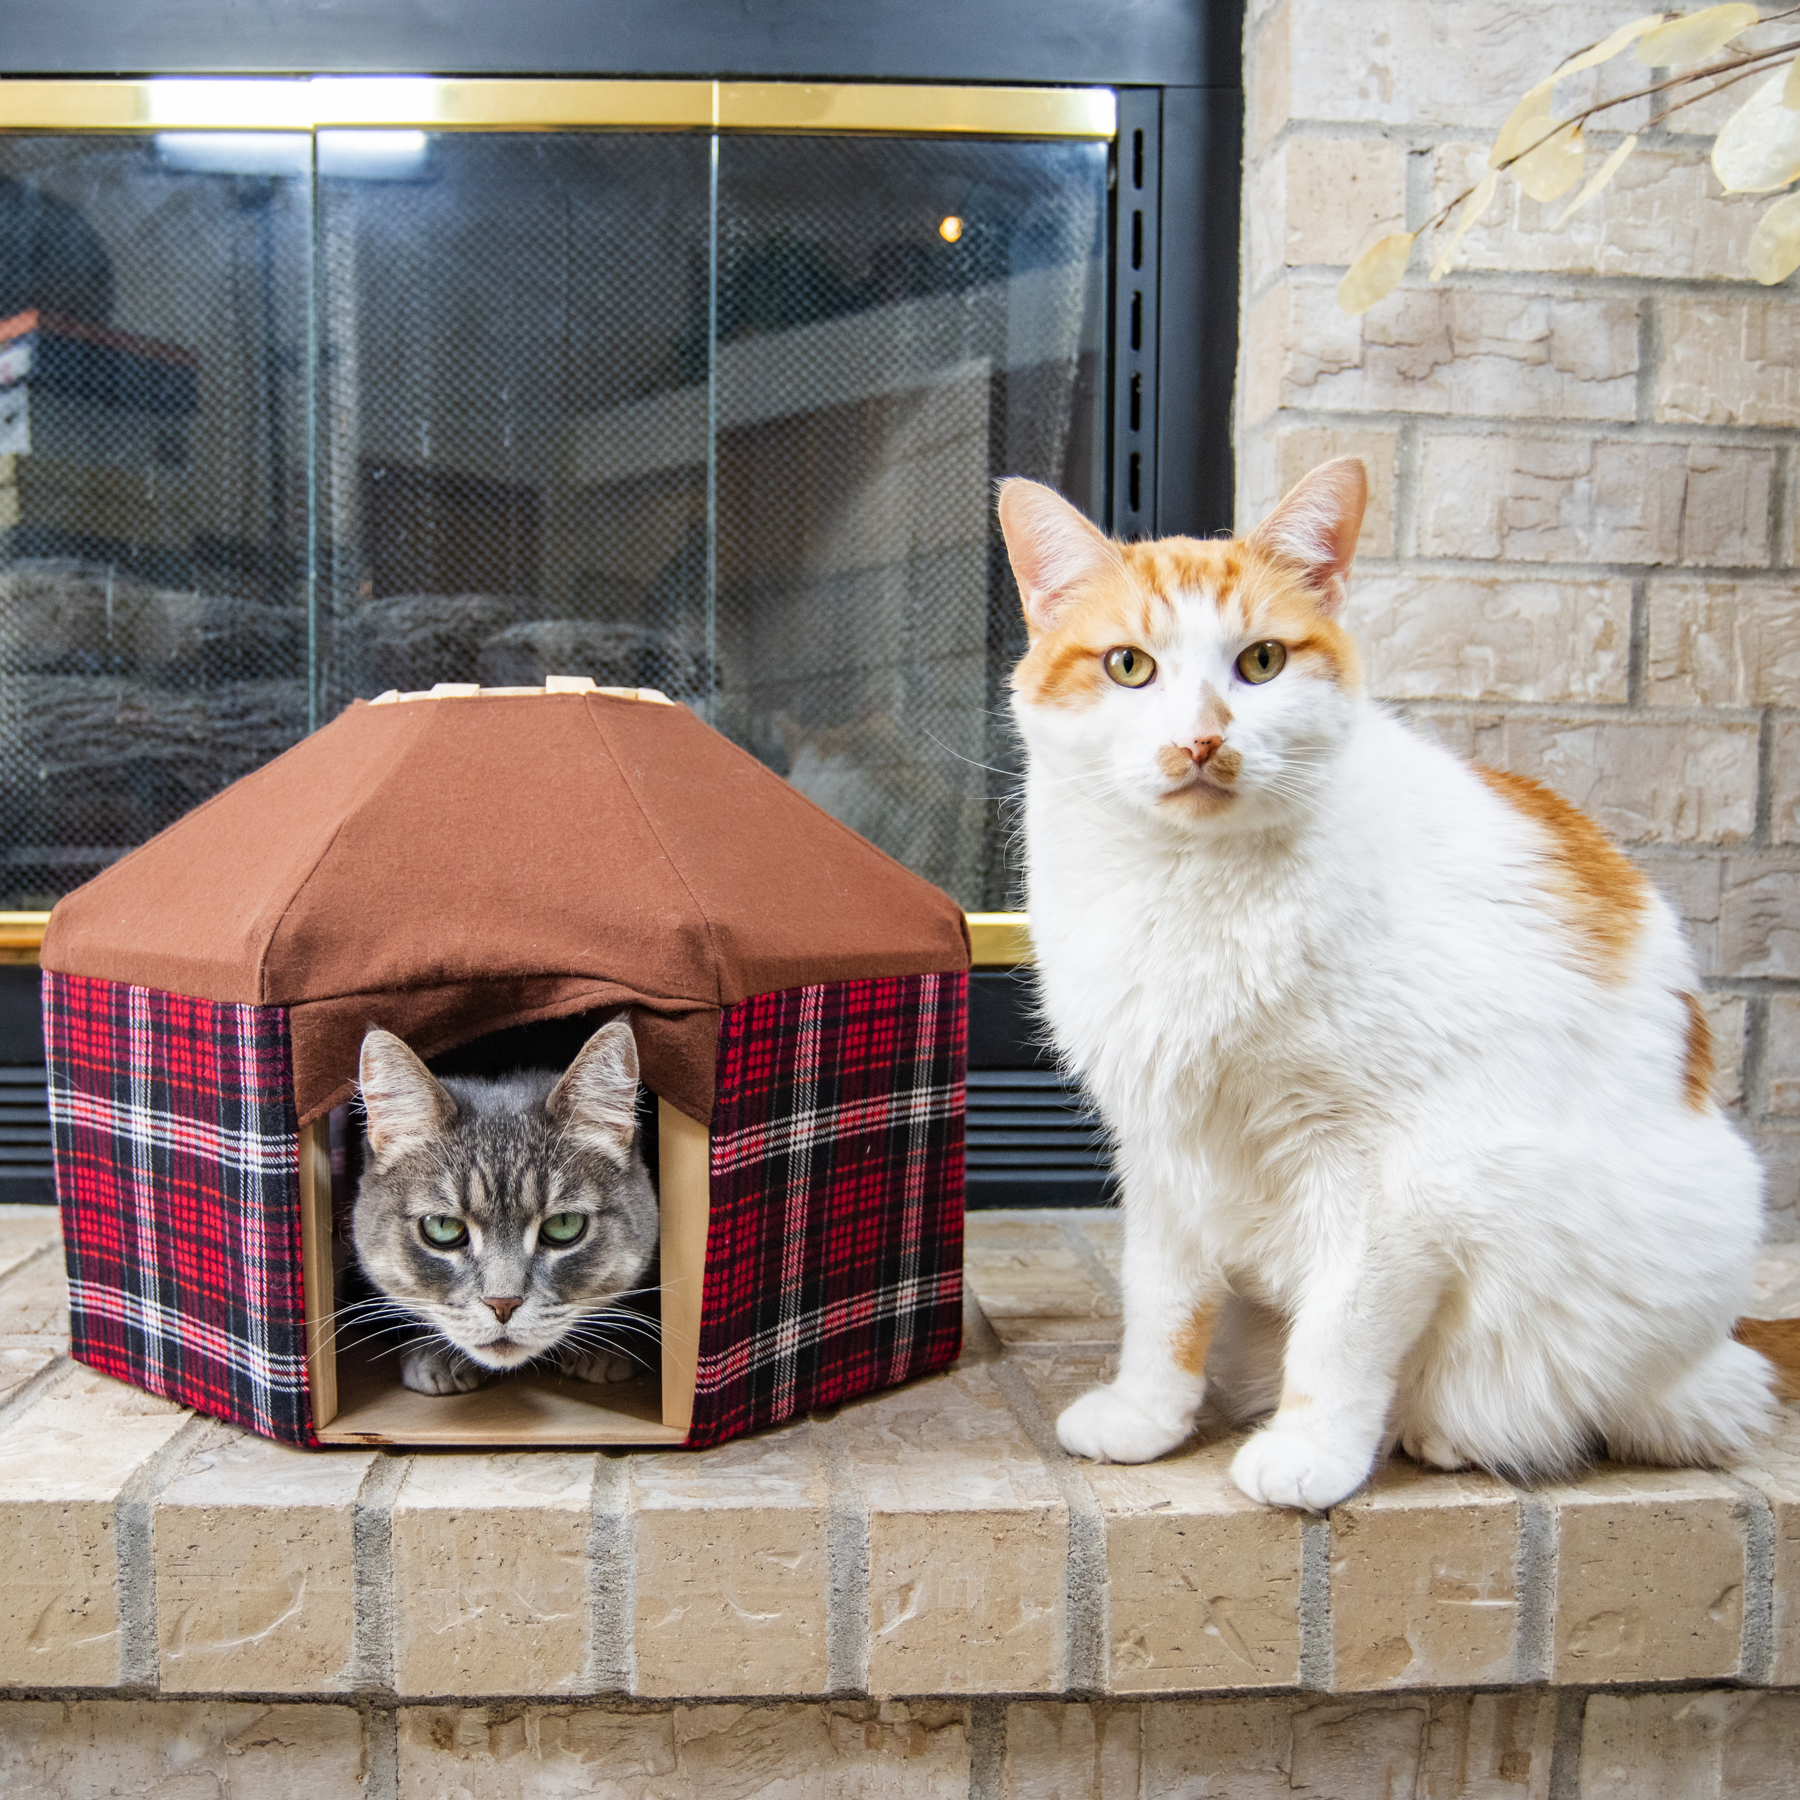 and small dogs cats Watermelon pet yurt \u2013 Special Edition pet tent for rabbits